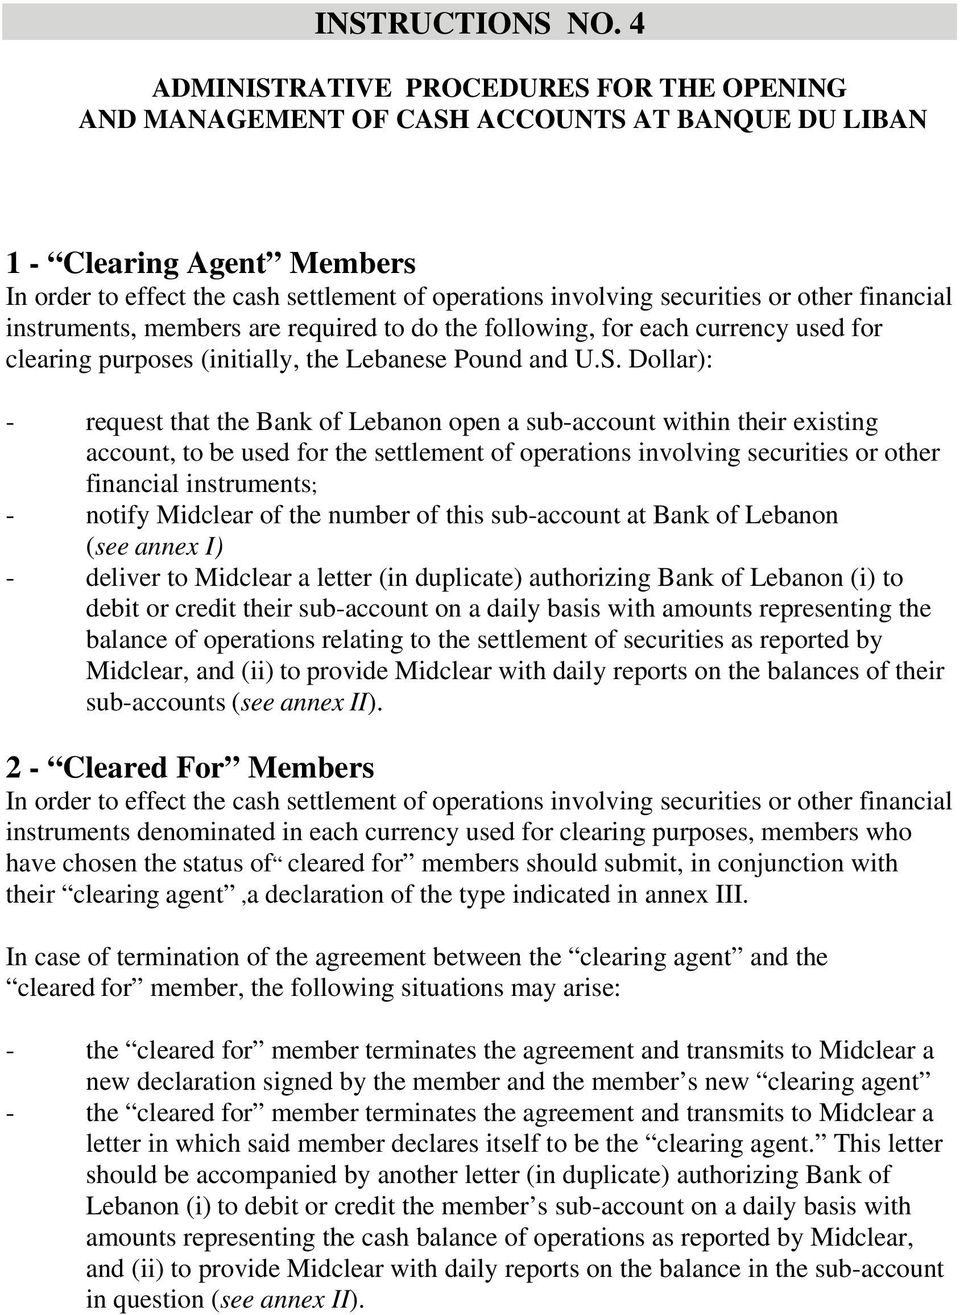 other financial instruments, members are required to do the following, for each currency used for clearing purposes (initially, the Lebanese Pound and U.S.